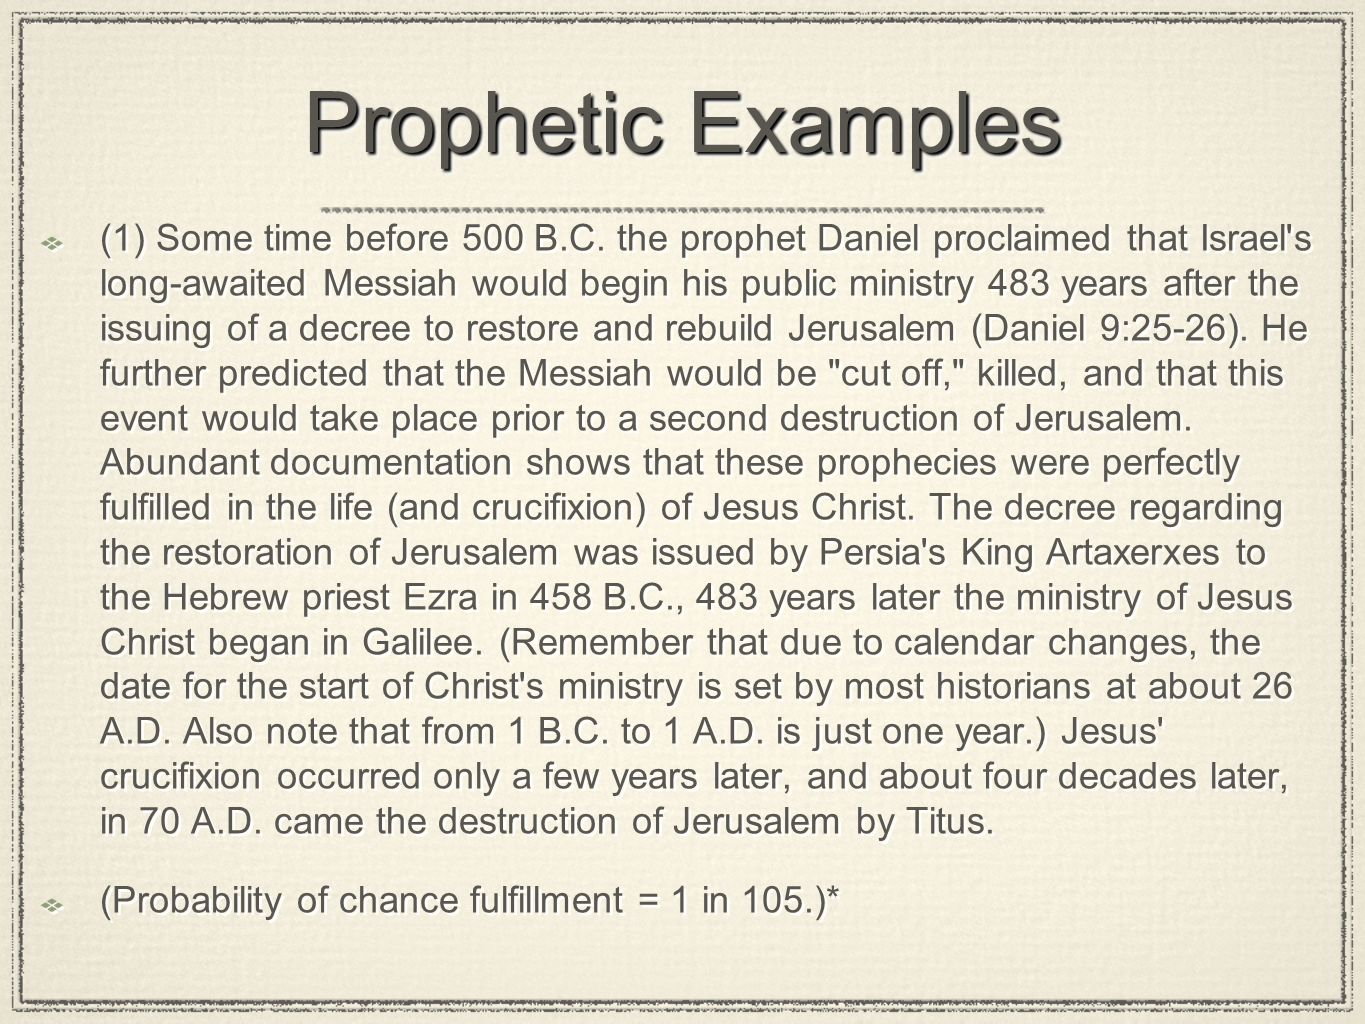 Prophetic Examples (1) Some time before 500 B.C. the prophet Daniel proclaimed that Israel's long-awaited Messiah would begin his public ministry 483